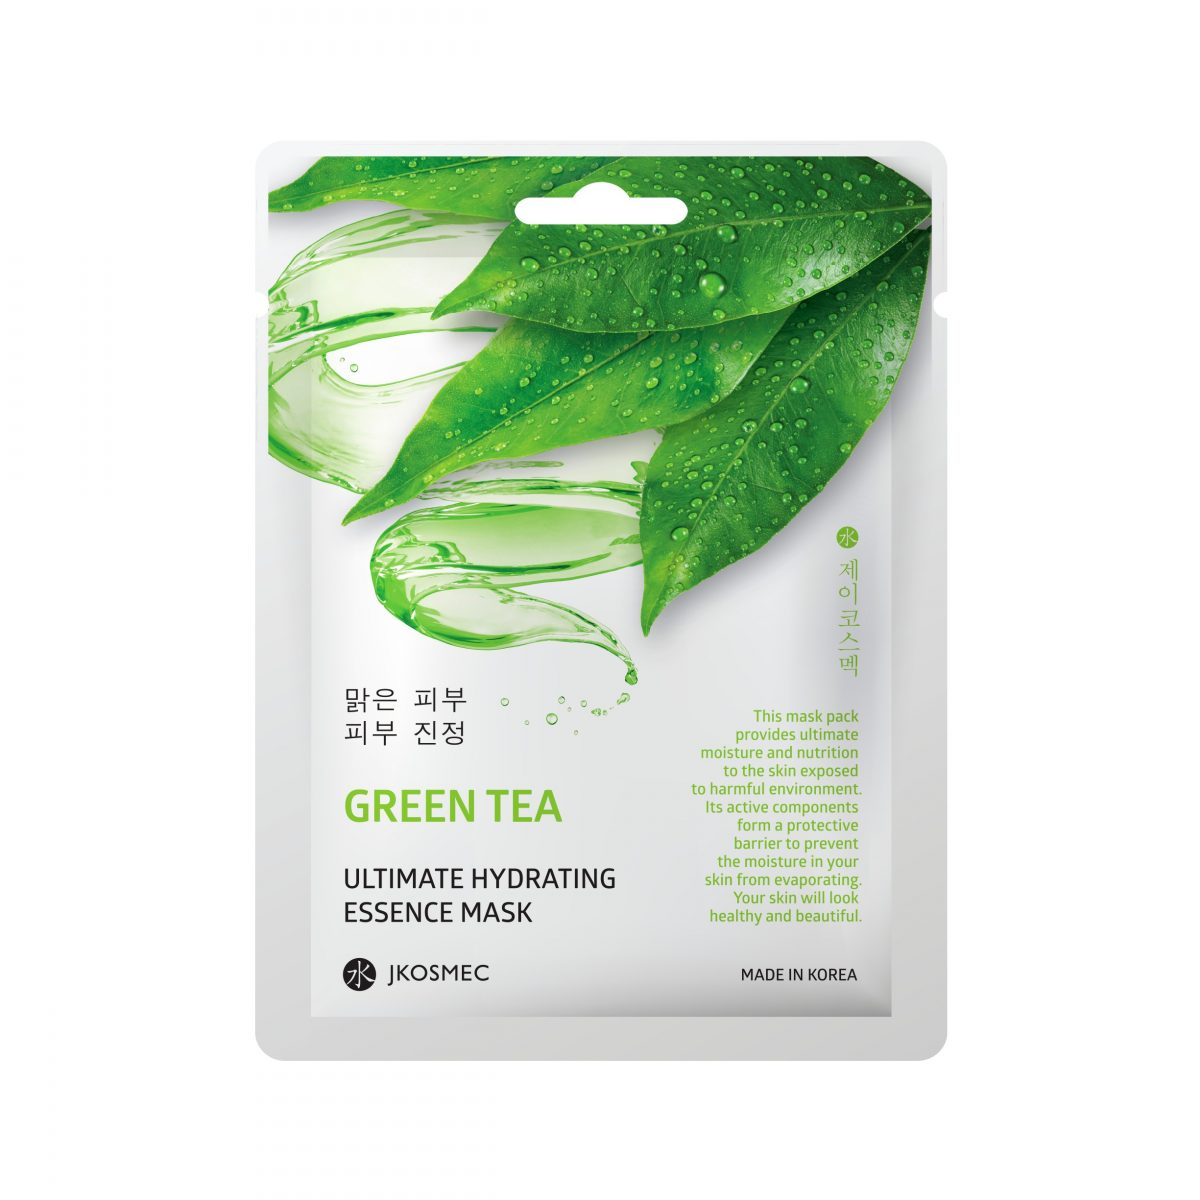 JKOSMEC GREEN TEA ULTIMATE HYDRATING ESSENCE MASK